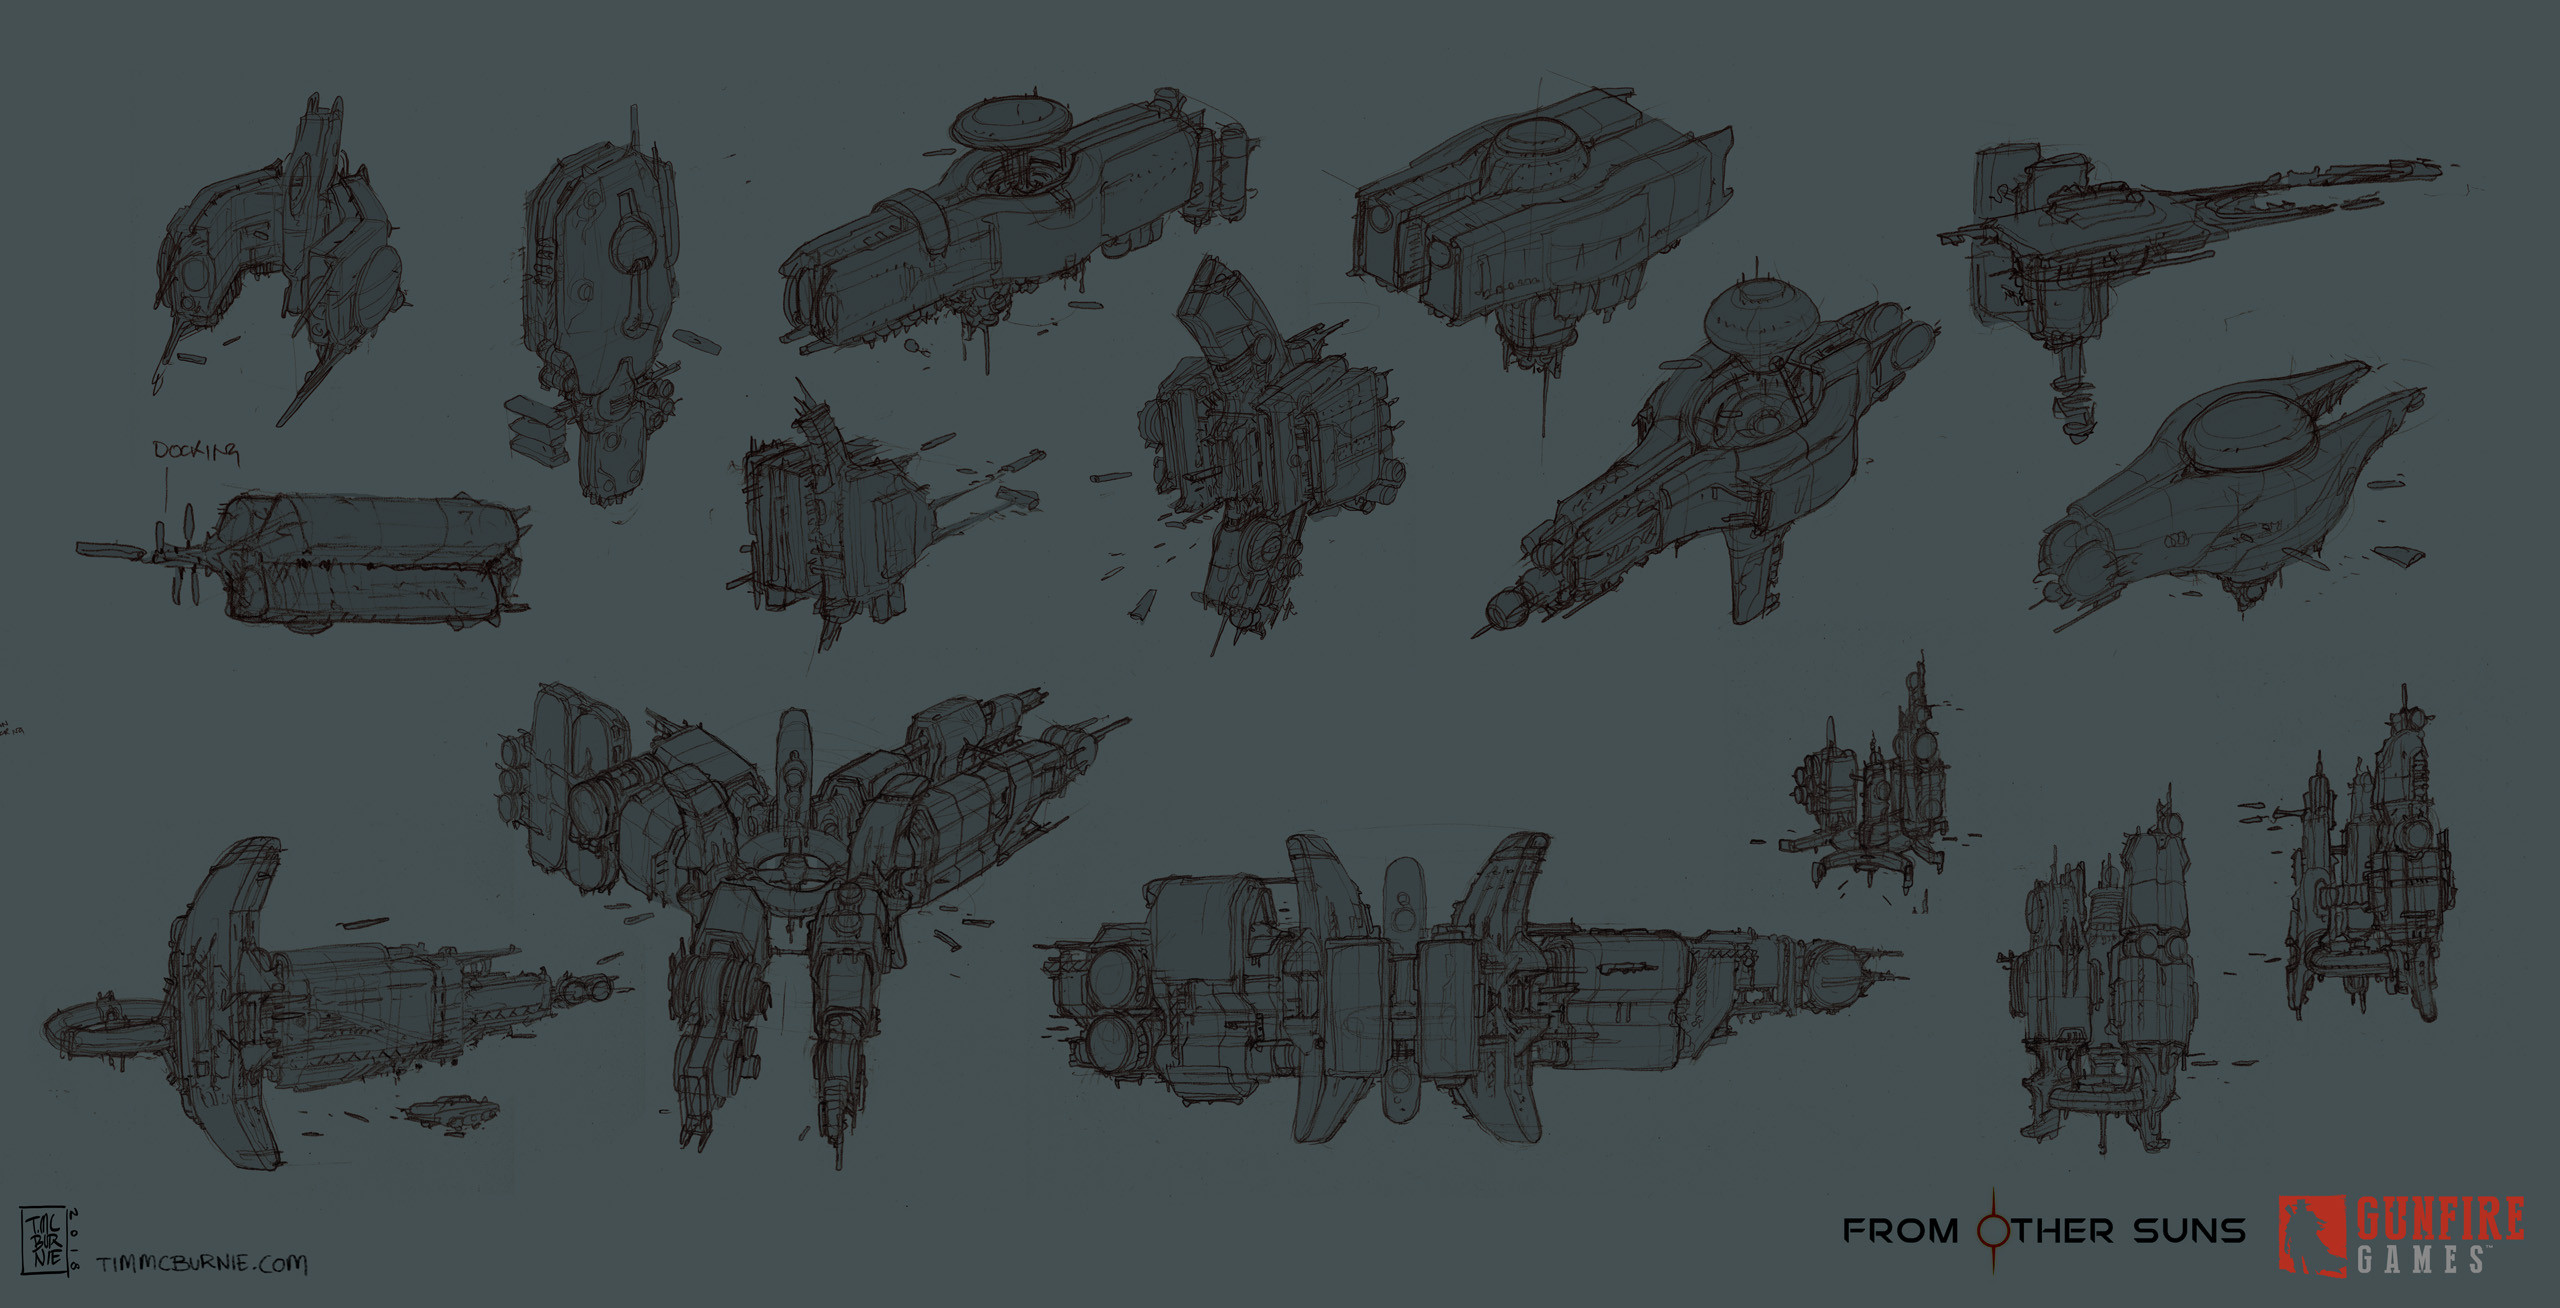 Space Station sketches